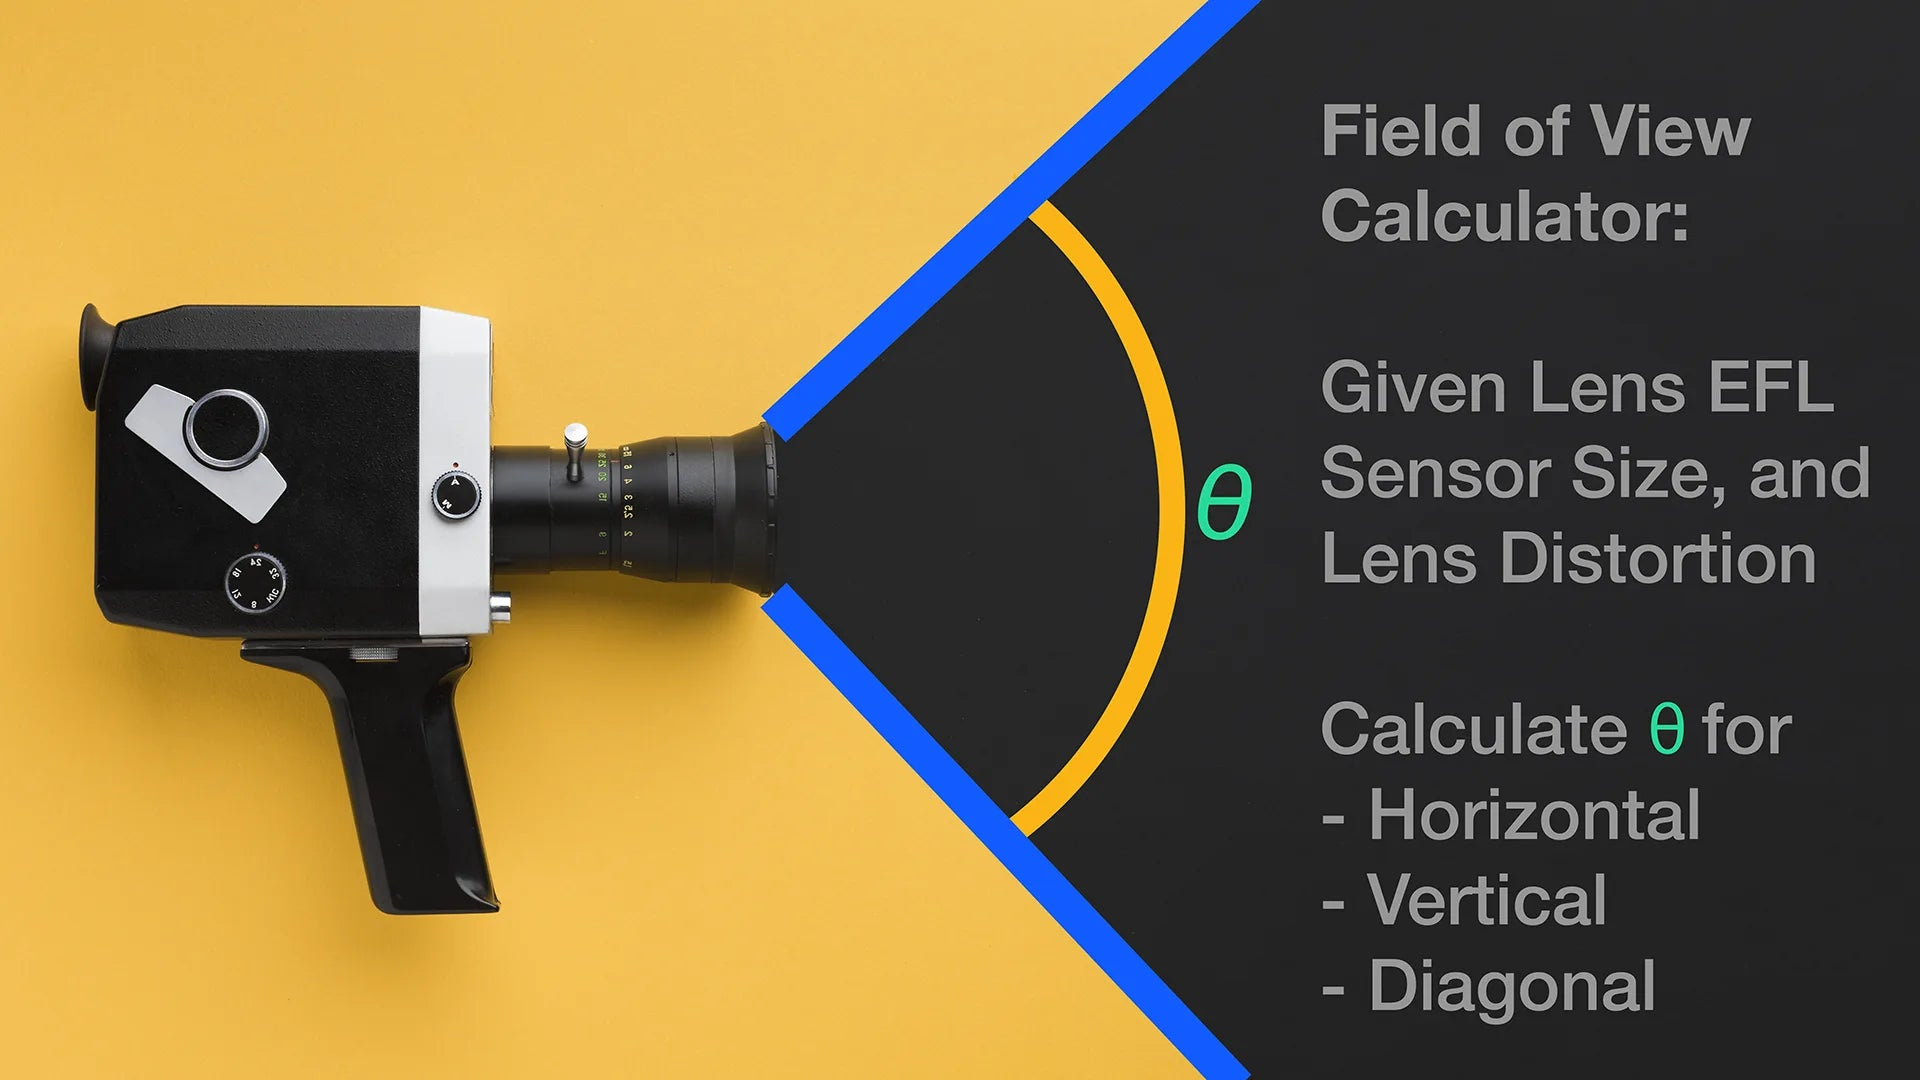 How to focus a camera with correct Field of View Information